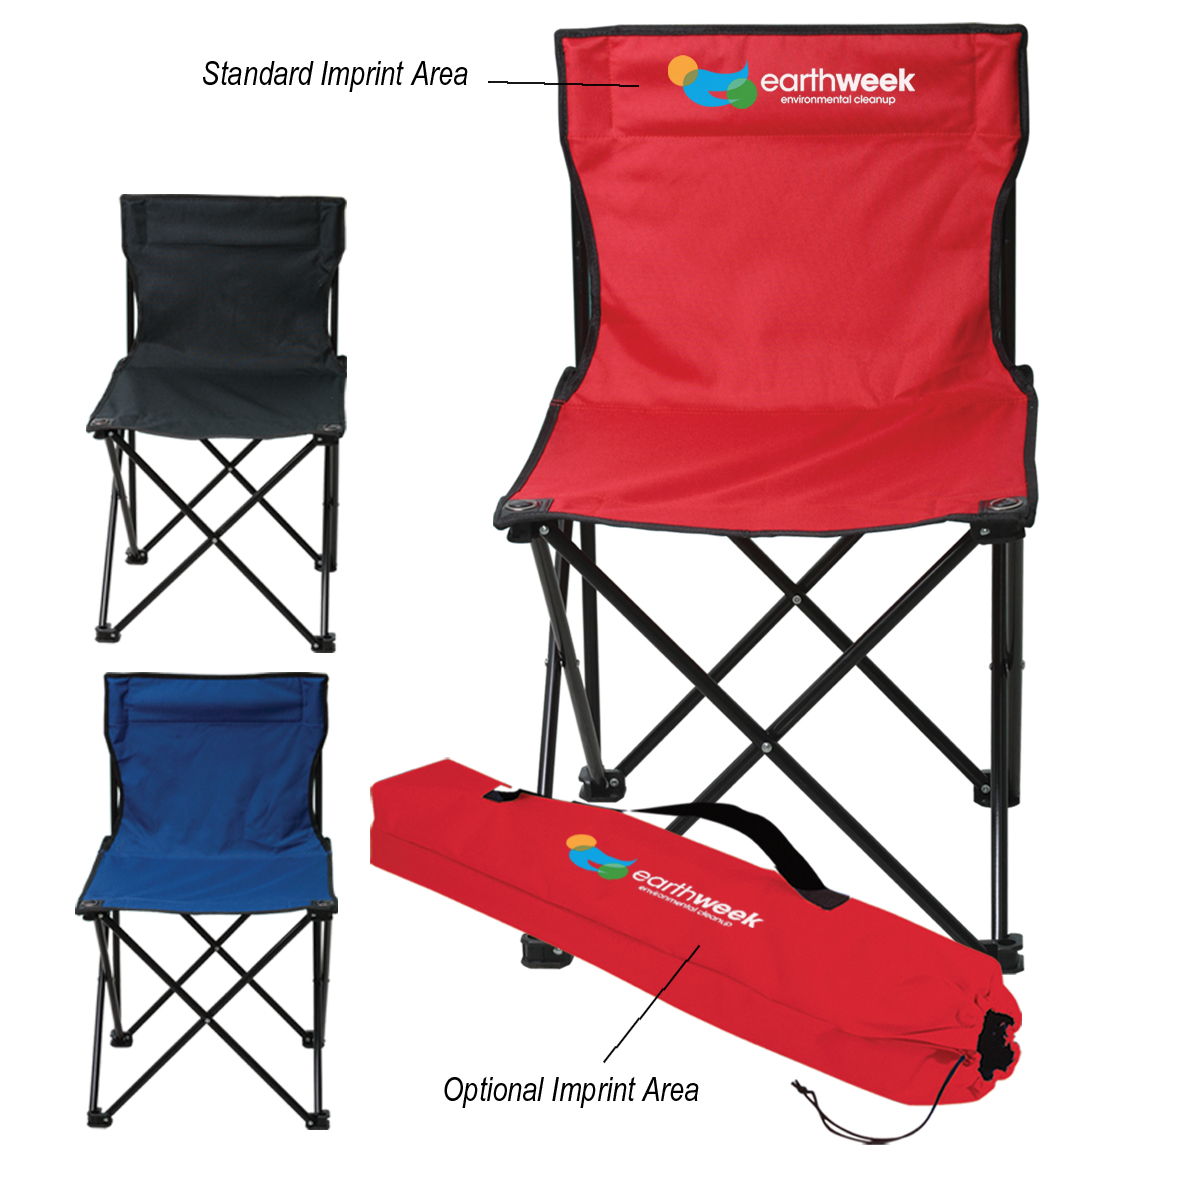 Buster Chair 7070 Price Buster Folding Chair With Carrying Bag